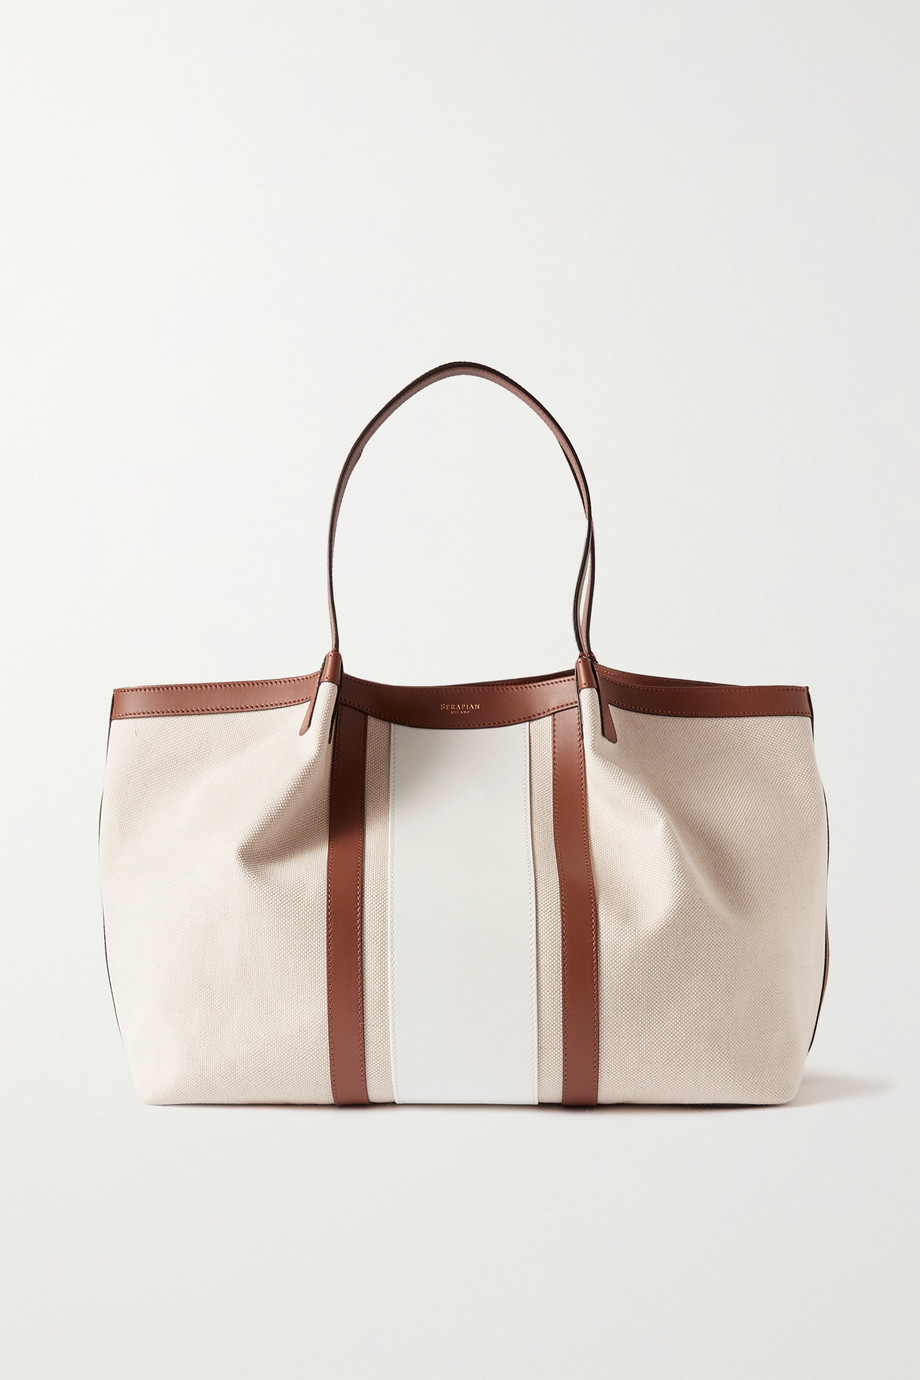 SERAPIAN Secret large canvas and leather tote